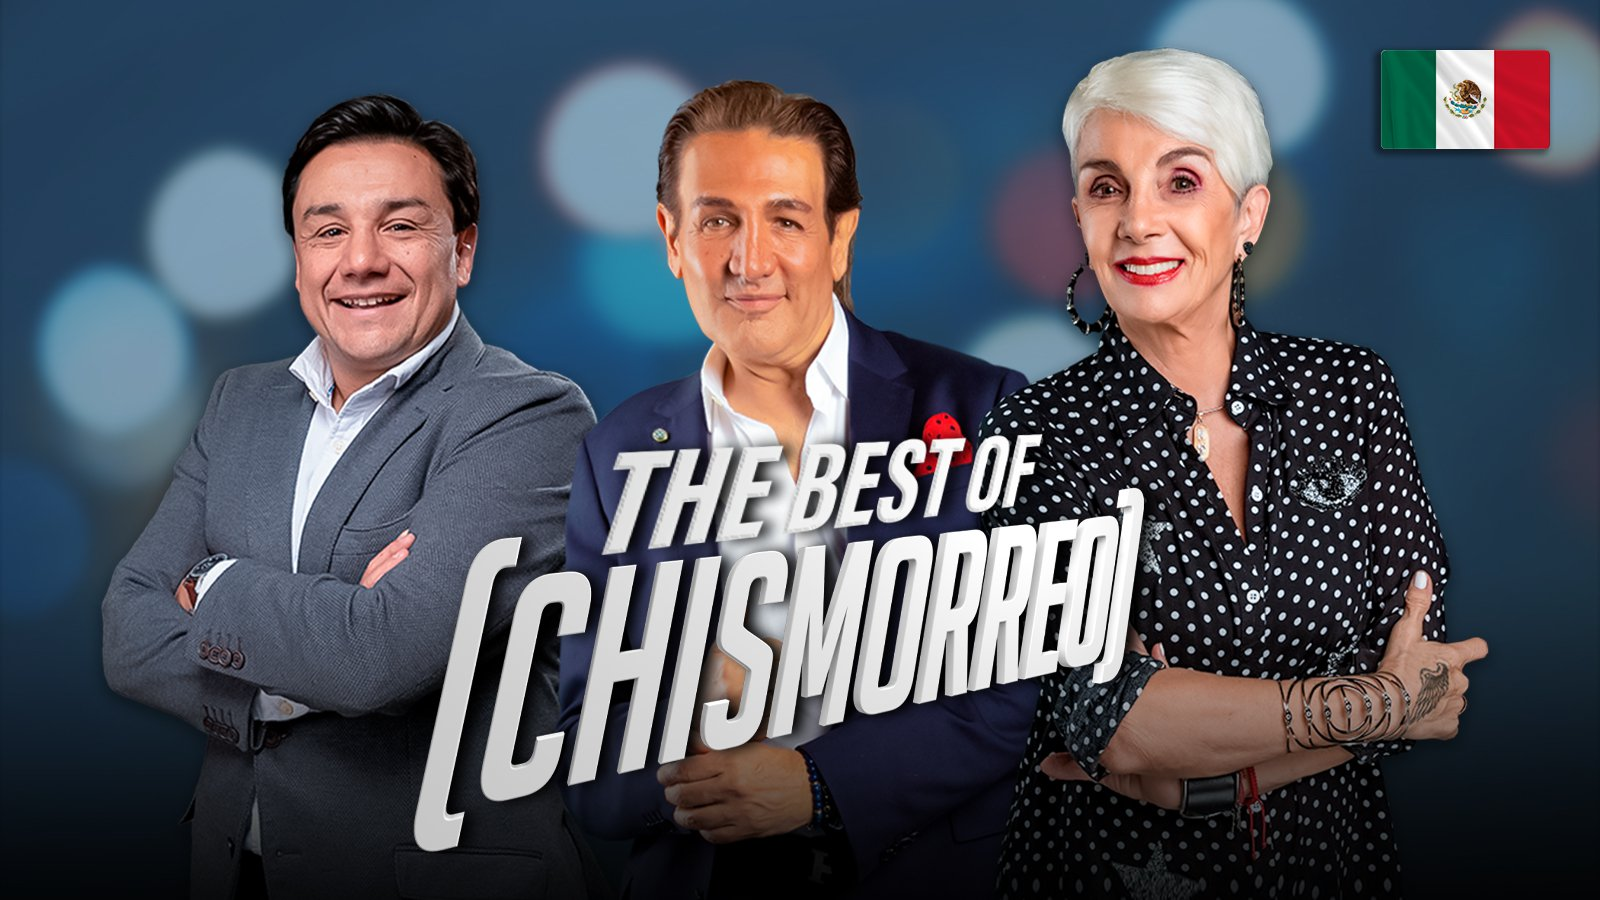 The Best Of Chismorreo poster